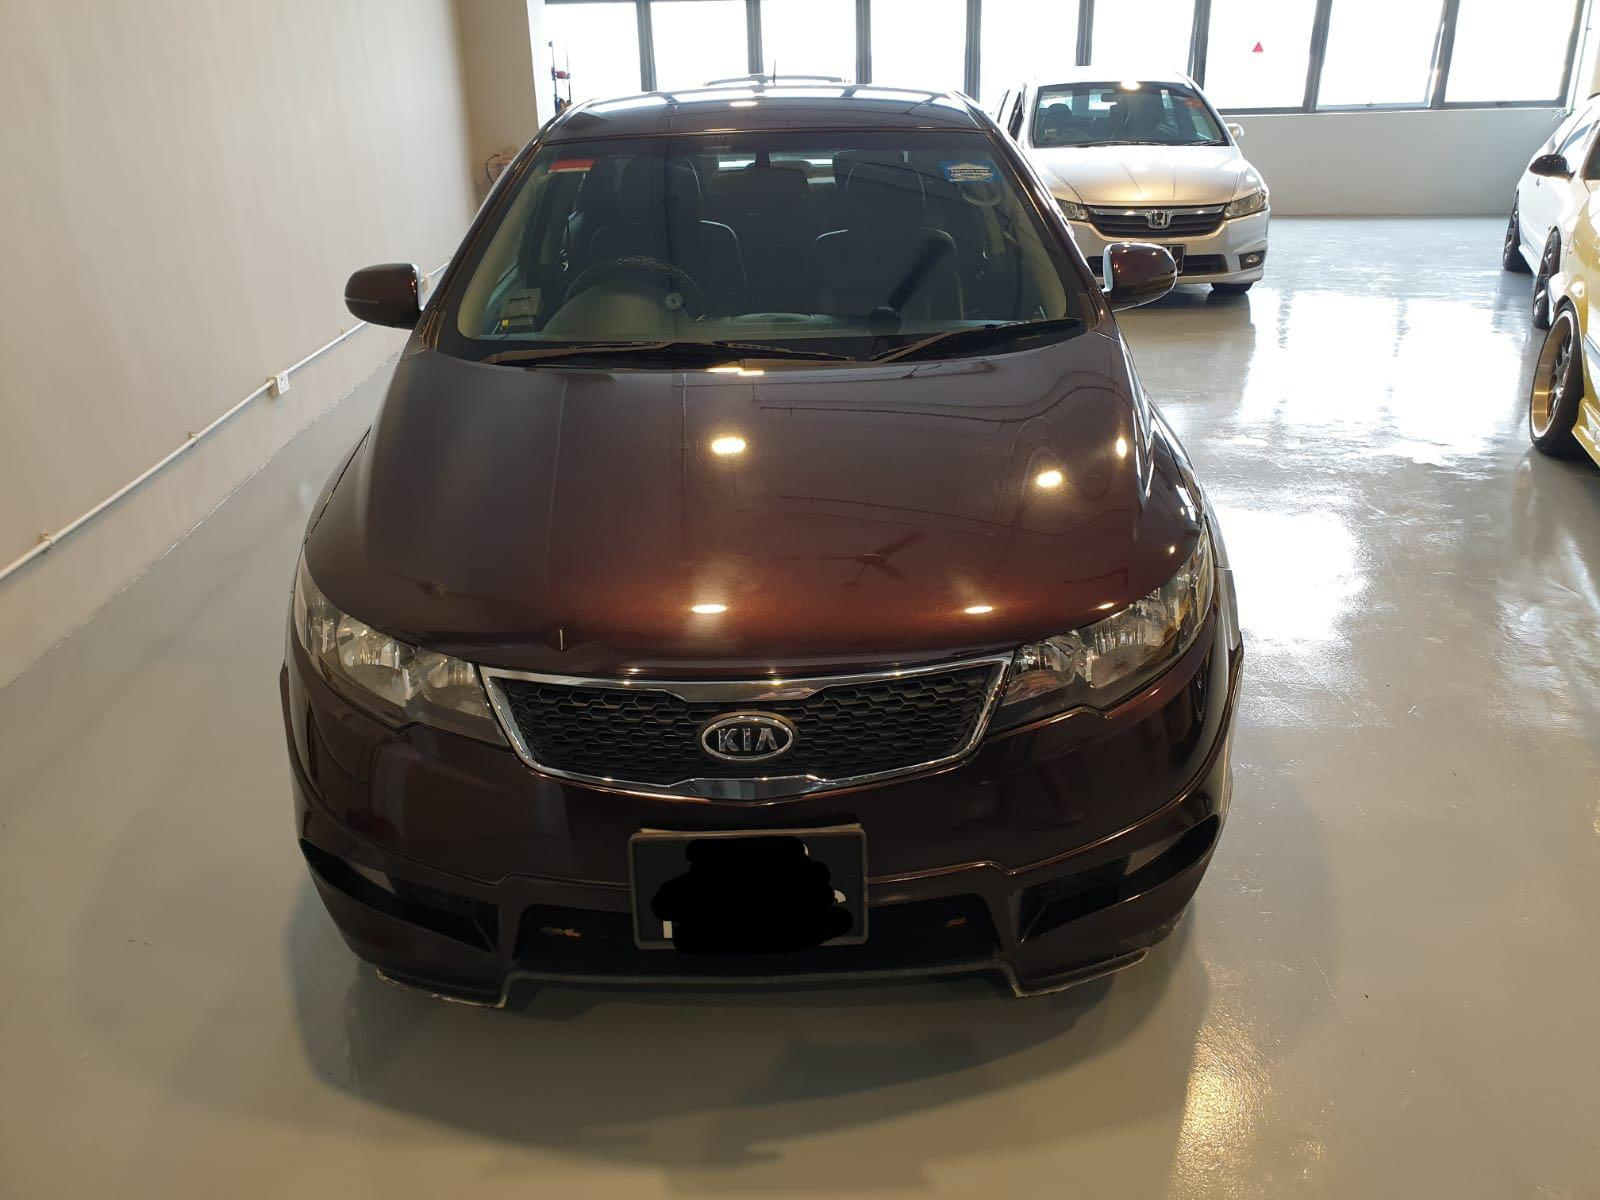 Kia Cerato Forte 1.6A <CHEAP CARS FOR RENT / RENTAL (PERSONAL / GRAB / GOJEK / RYDE / LALAMOVE DRIVERS WELCOME)>